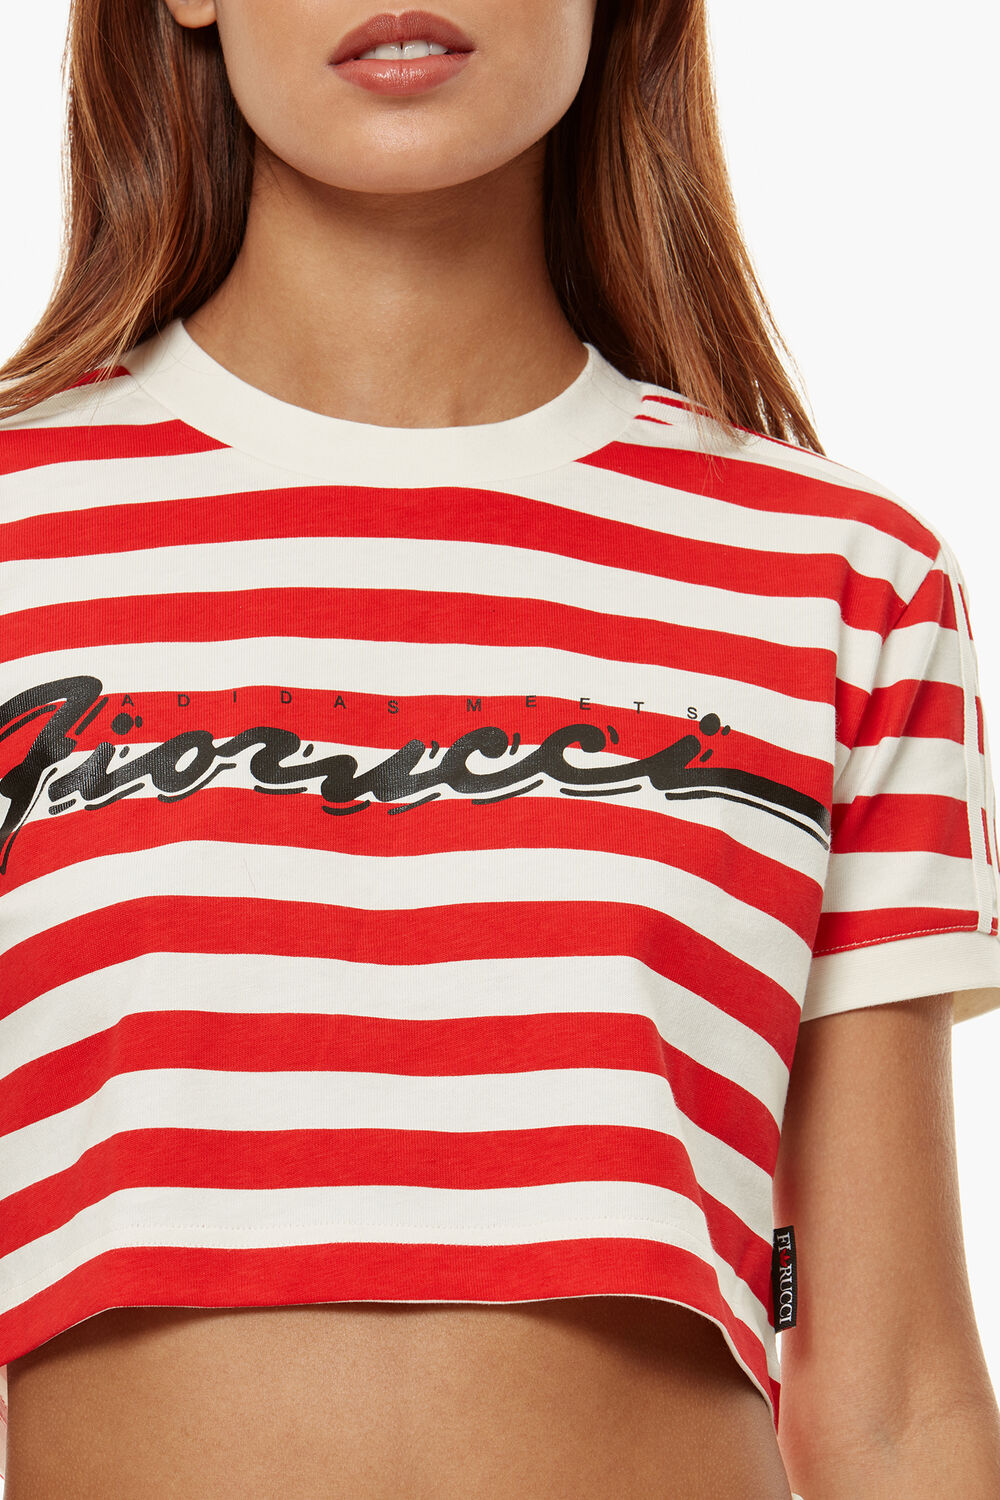 53d4473c0f Adidas x Fiorucci Stripe Crop T-Shirt White/Red